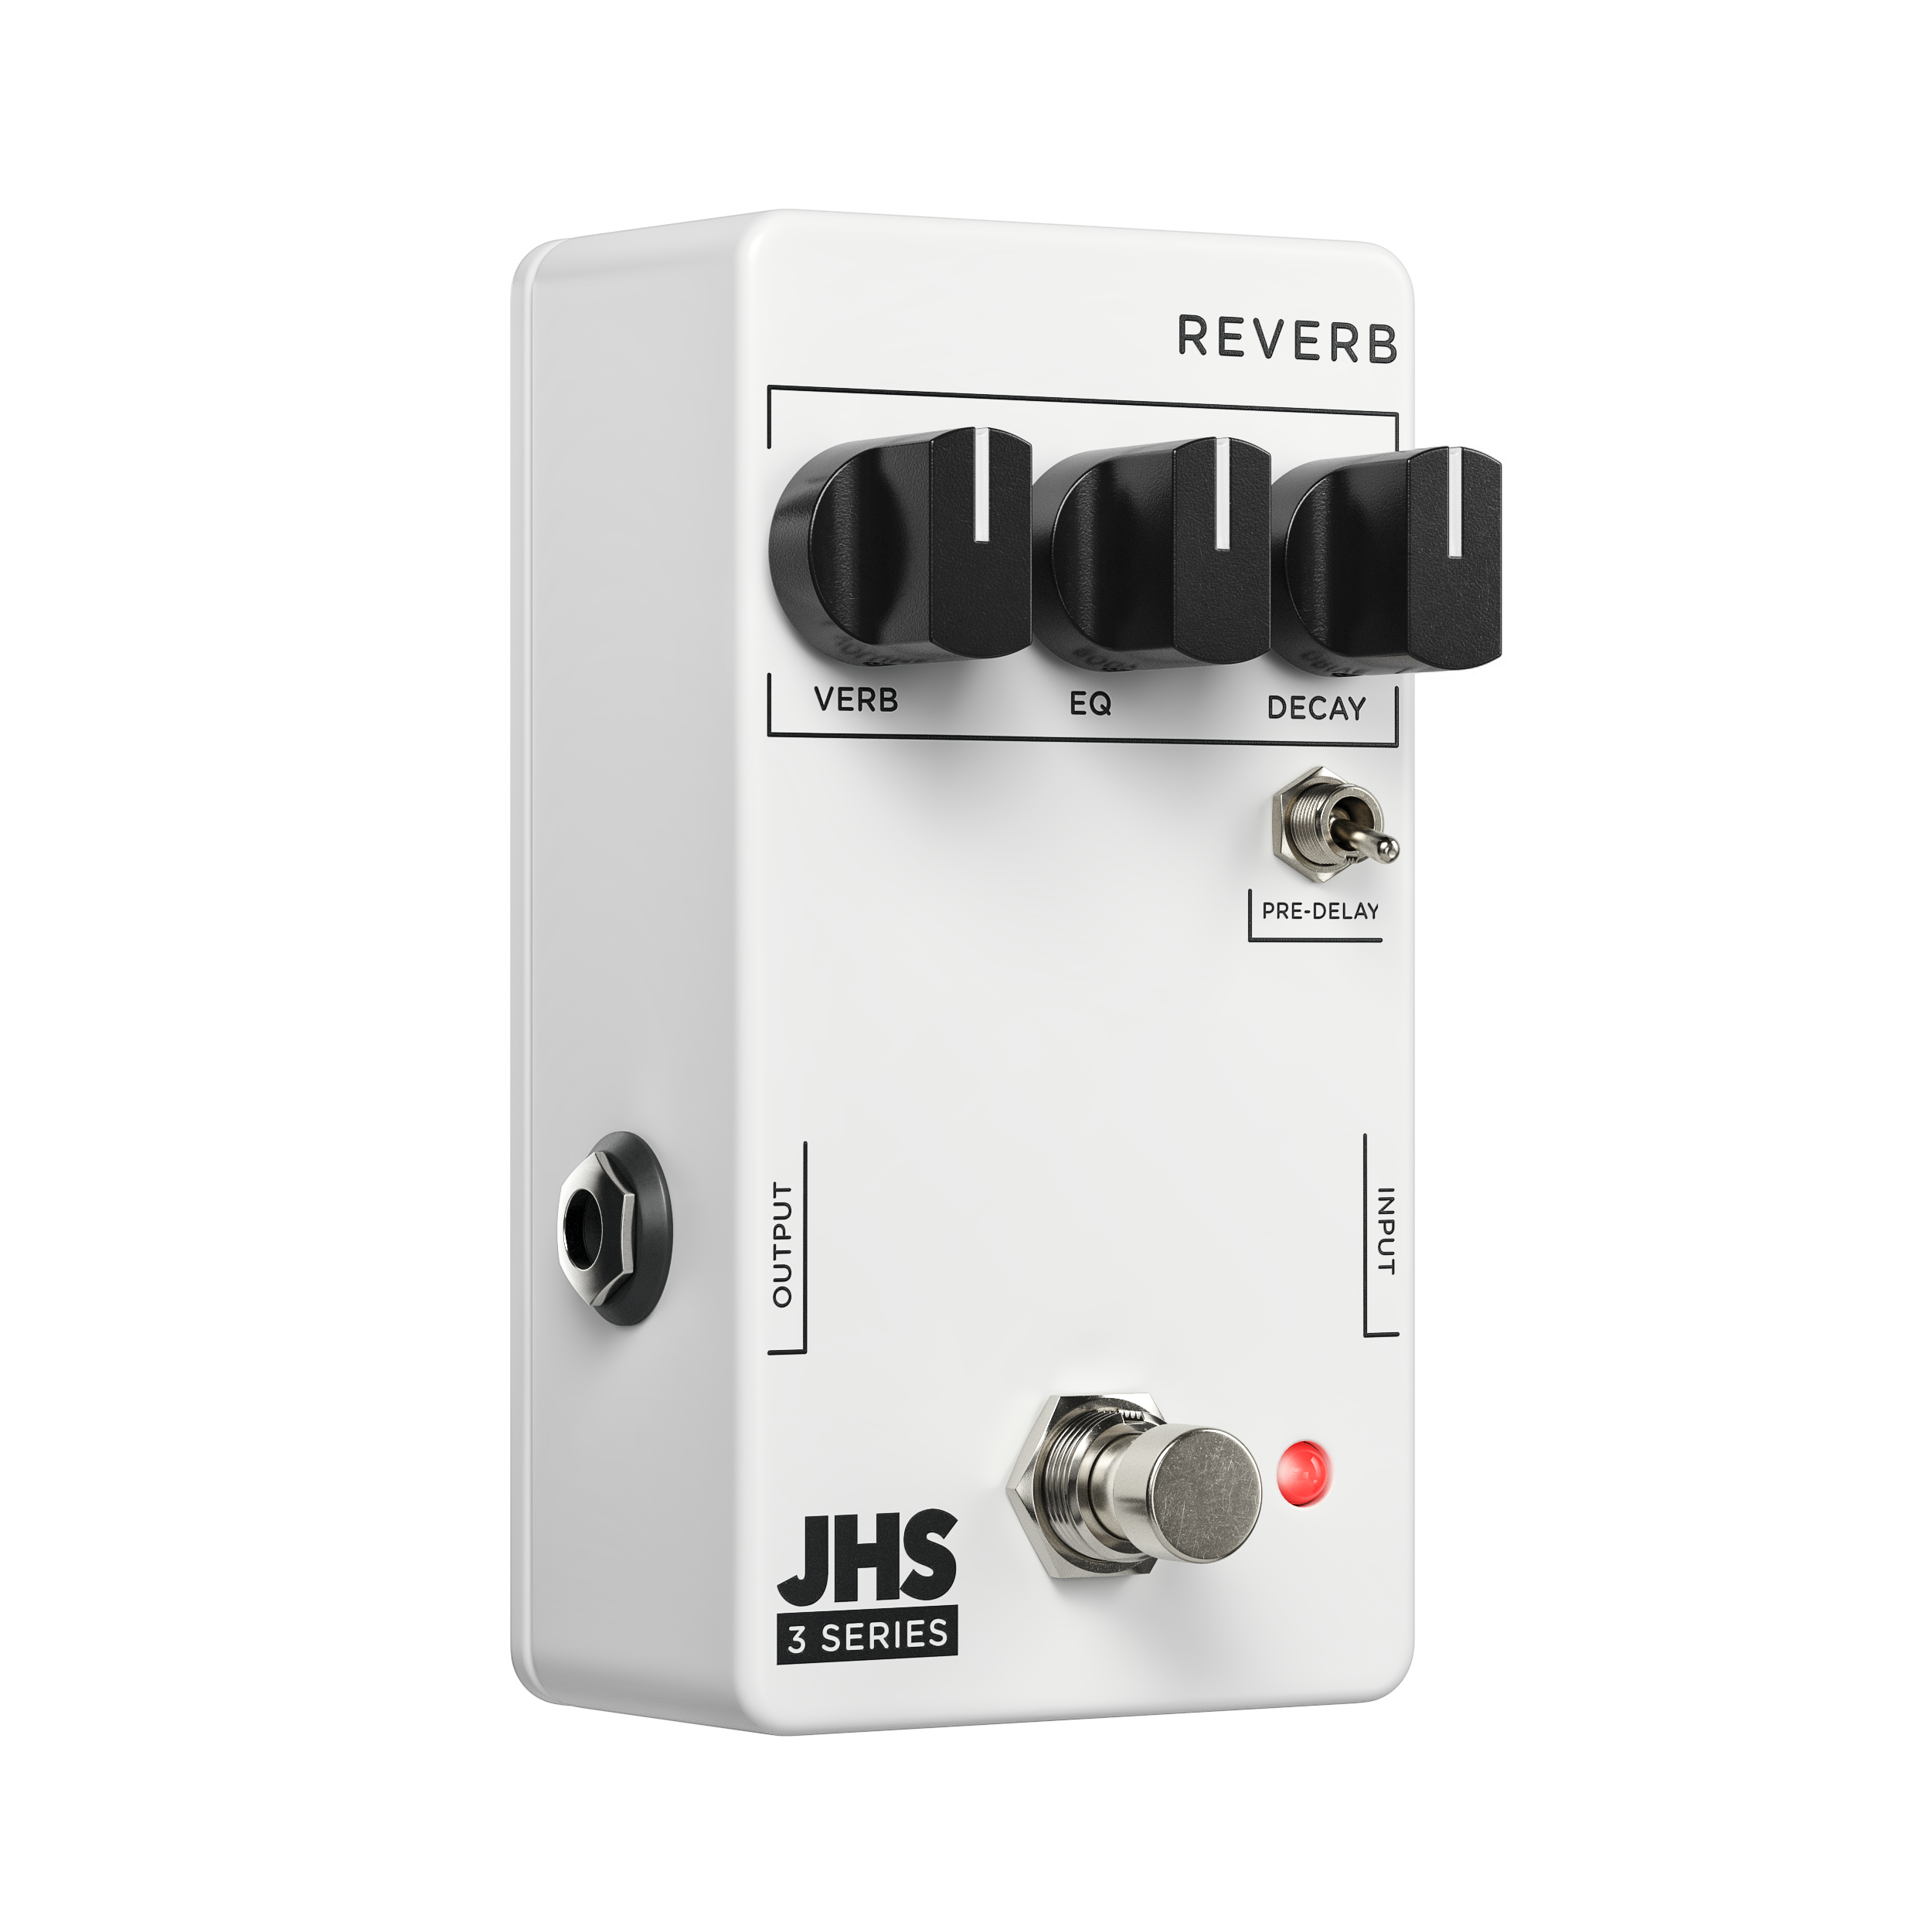 JHS-Pedals-3-Series-Reverb-angle